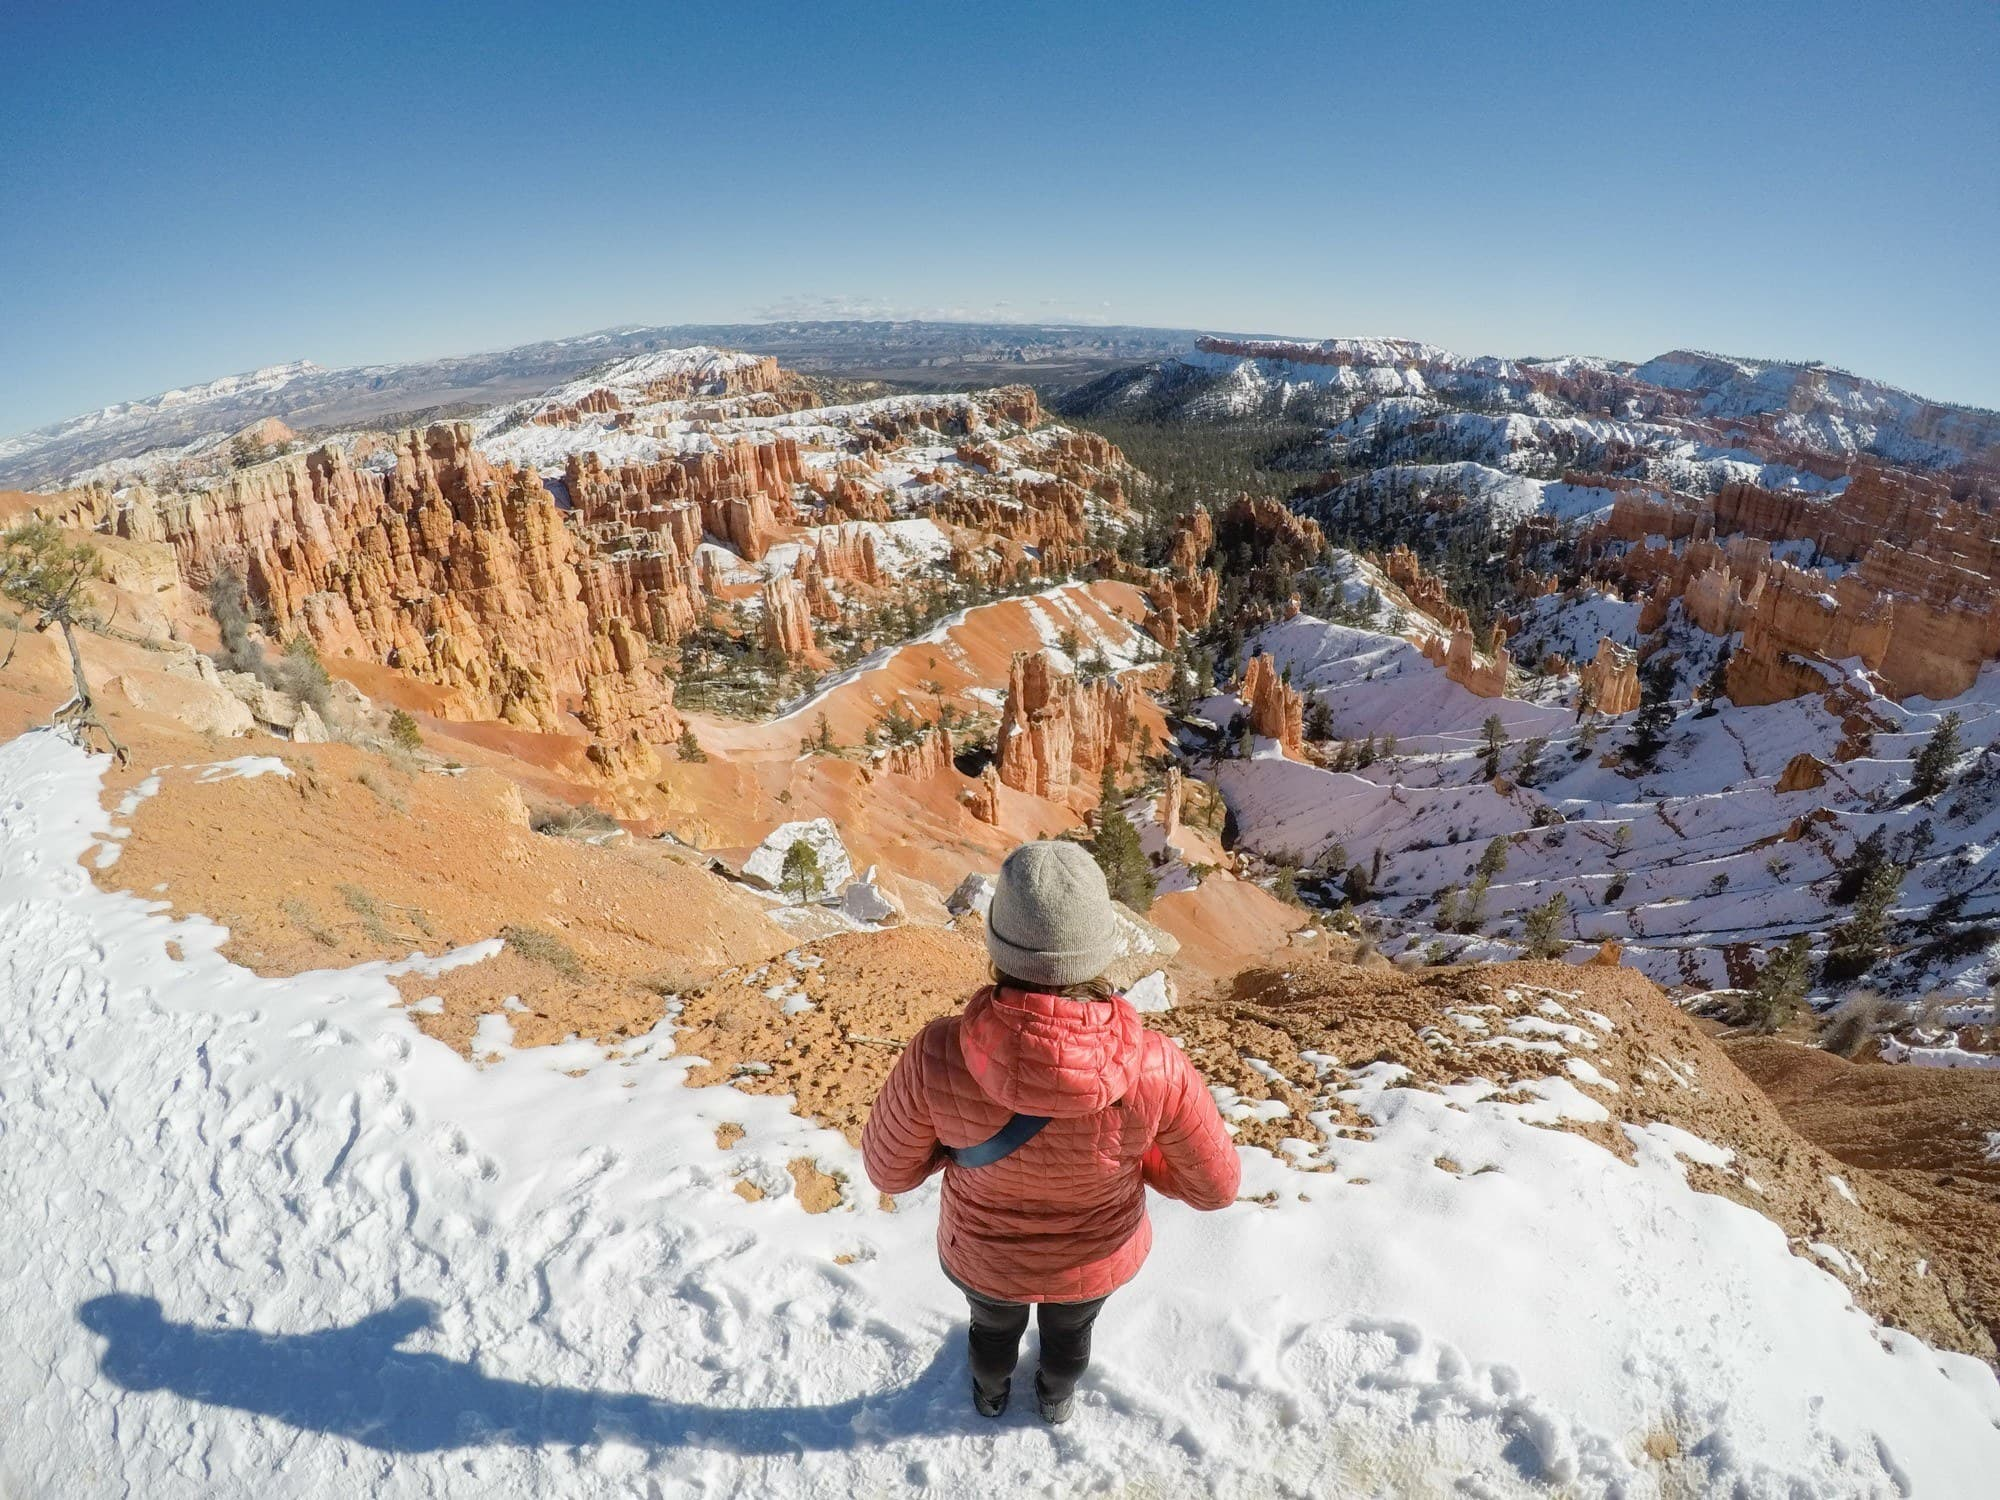 Planning a trip to busy and popular National Park? Here are tips and tricks to beat the crowds and have an enjoyable visit in overcrowded National Parks.